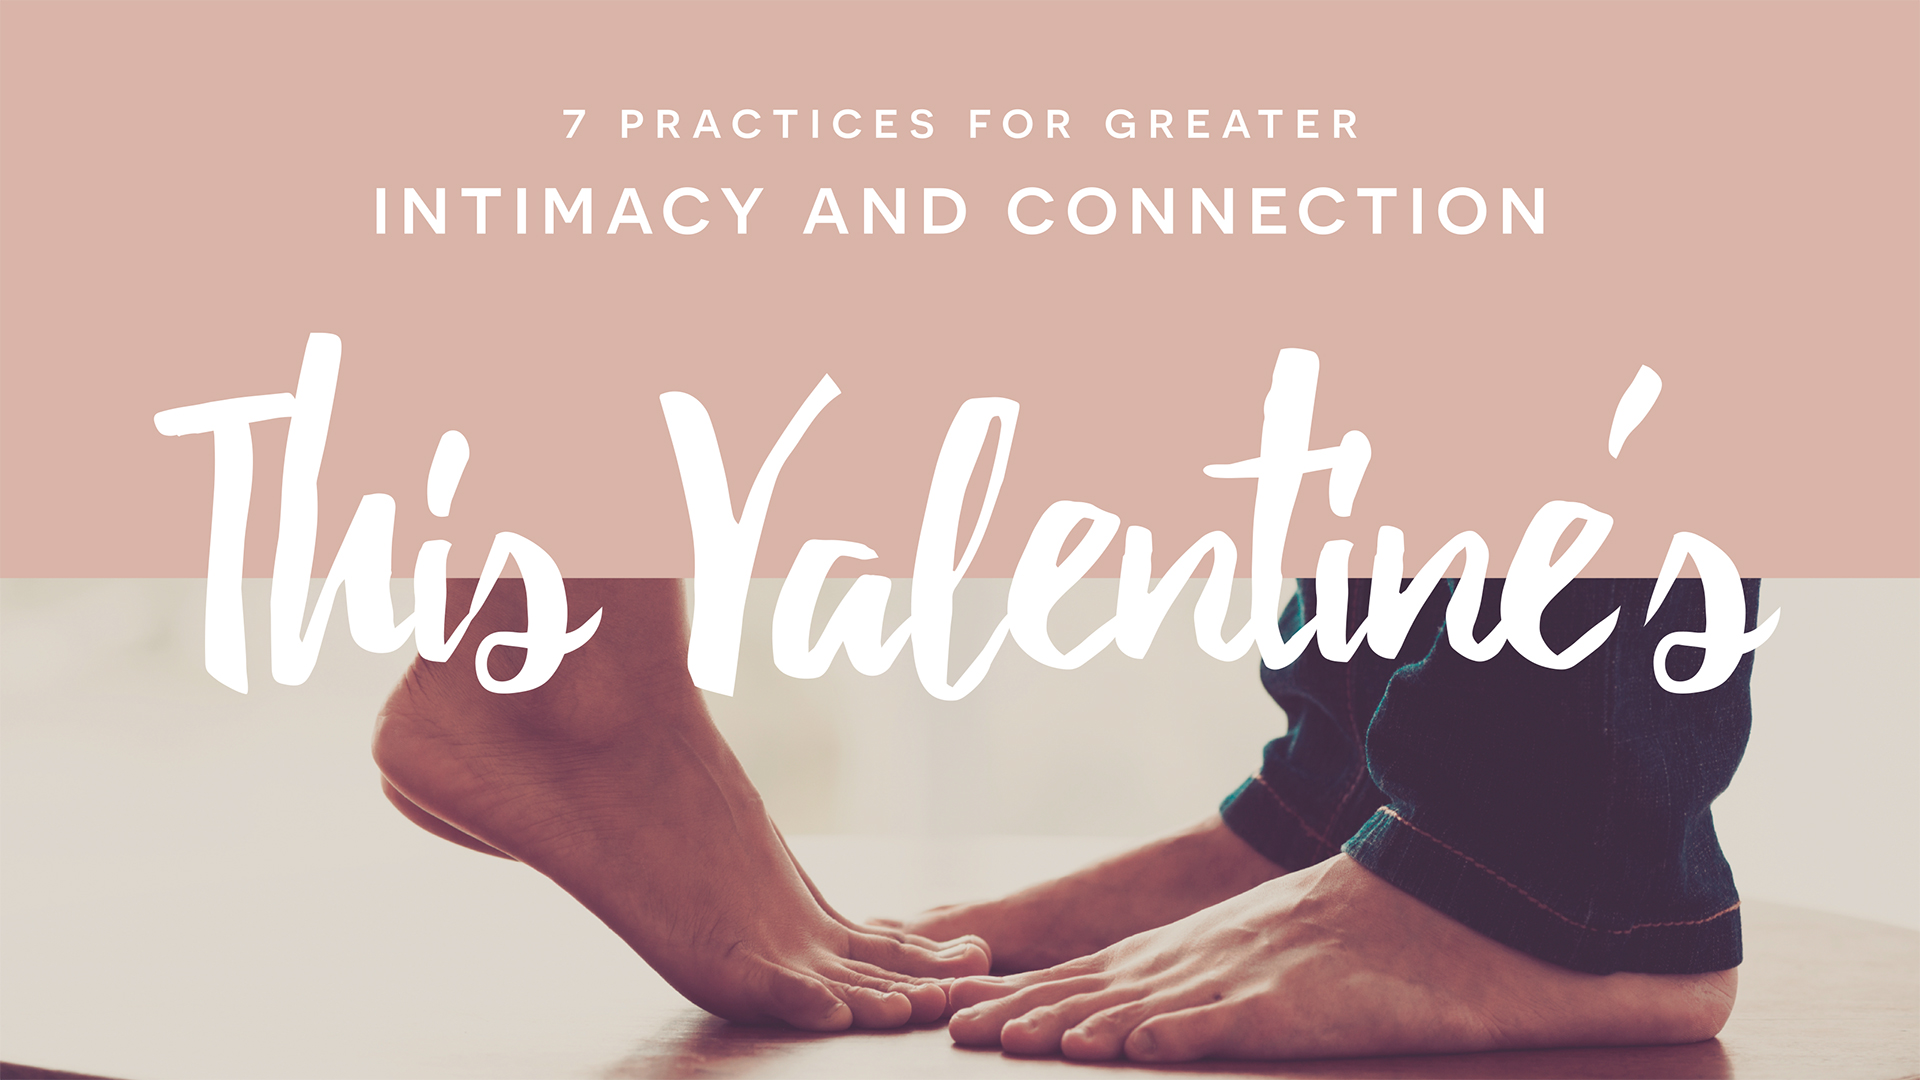 7 Practices for Greater Intimacy and Connection this Valentine's Day